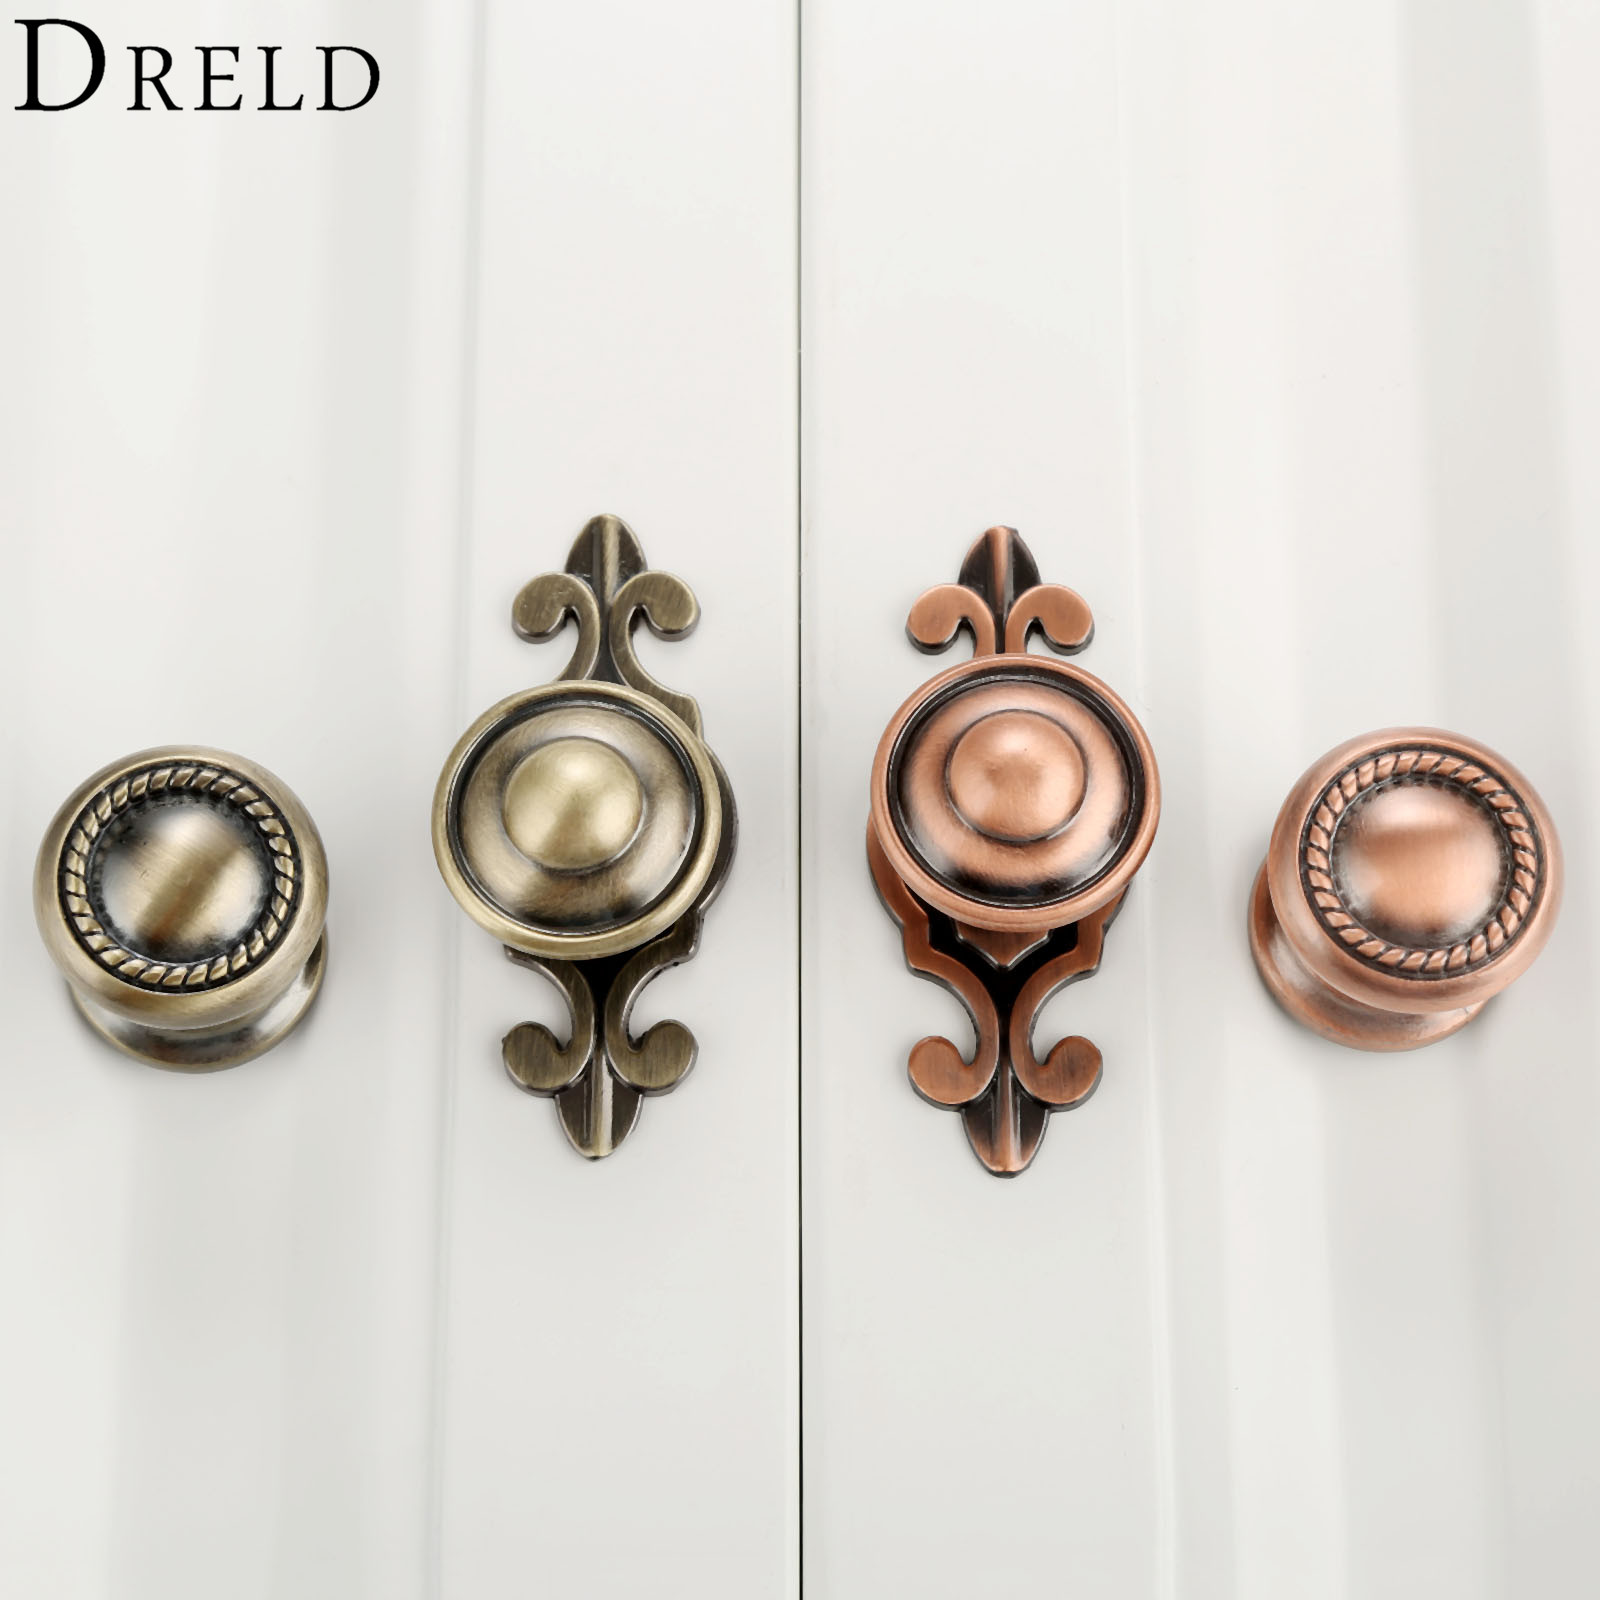 DRELD Furniture Handles Vintage Cabinet Knobs and Handles Alloy Door Knob Cupboard Drawer Kitchen Pull Handle Furniture Hardware 1pc furniture handles wardrobe door pull drawer handle kitchen cupboard handle cabinet knobs and handles decorative dolphin knob